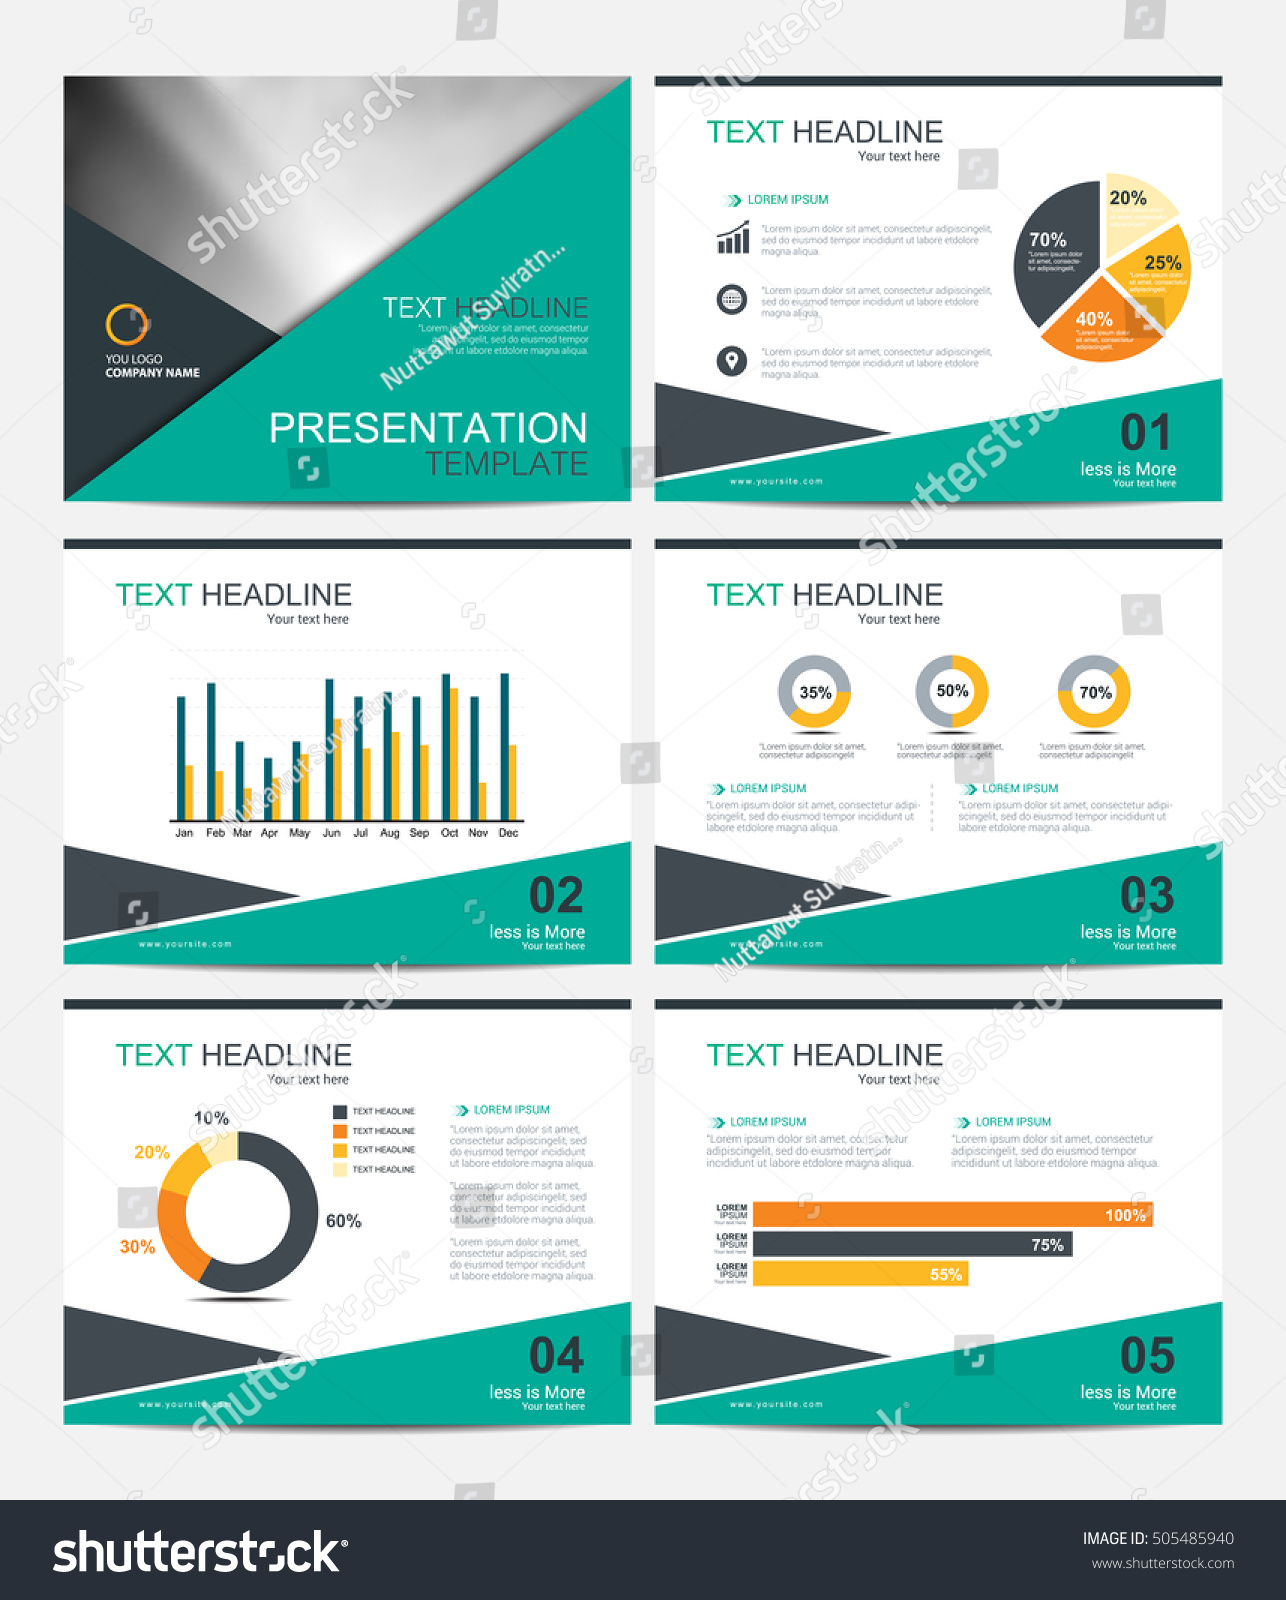 Studio Minimal Presentation PowerPoint Template